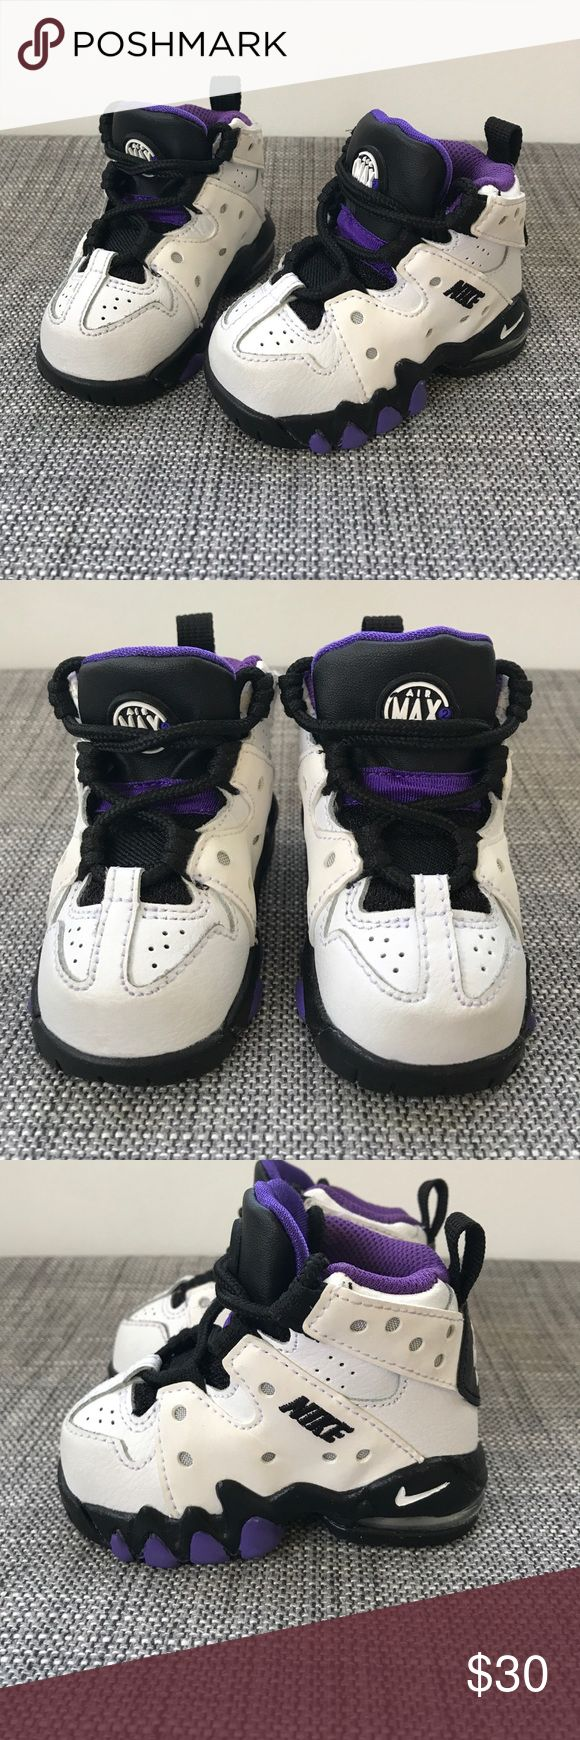 nike make your own shoes charles barkley kids shoes